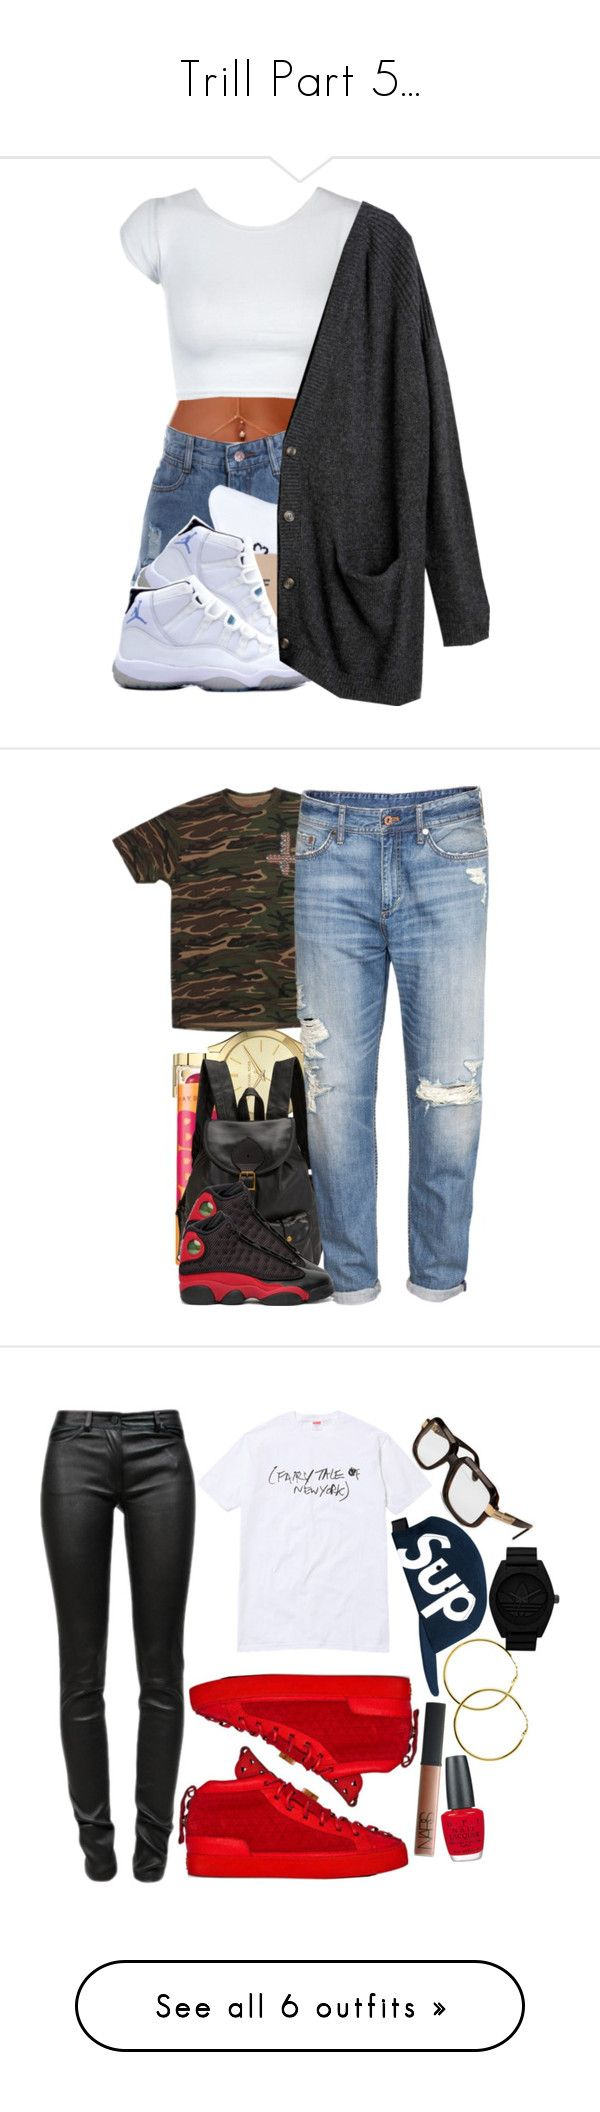 """""""Trill Part 5..."""" by slickpoet ❤ liked on Polyvore featuring HUF, Columbia, Monki, Michael Kors, Jas M.B., H&M, NIKE, Cazal, T By Alexander Wang and Melissa Odabash"""